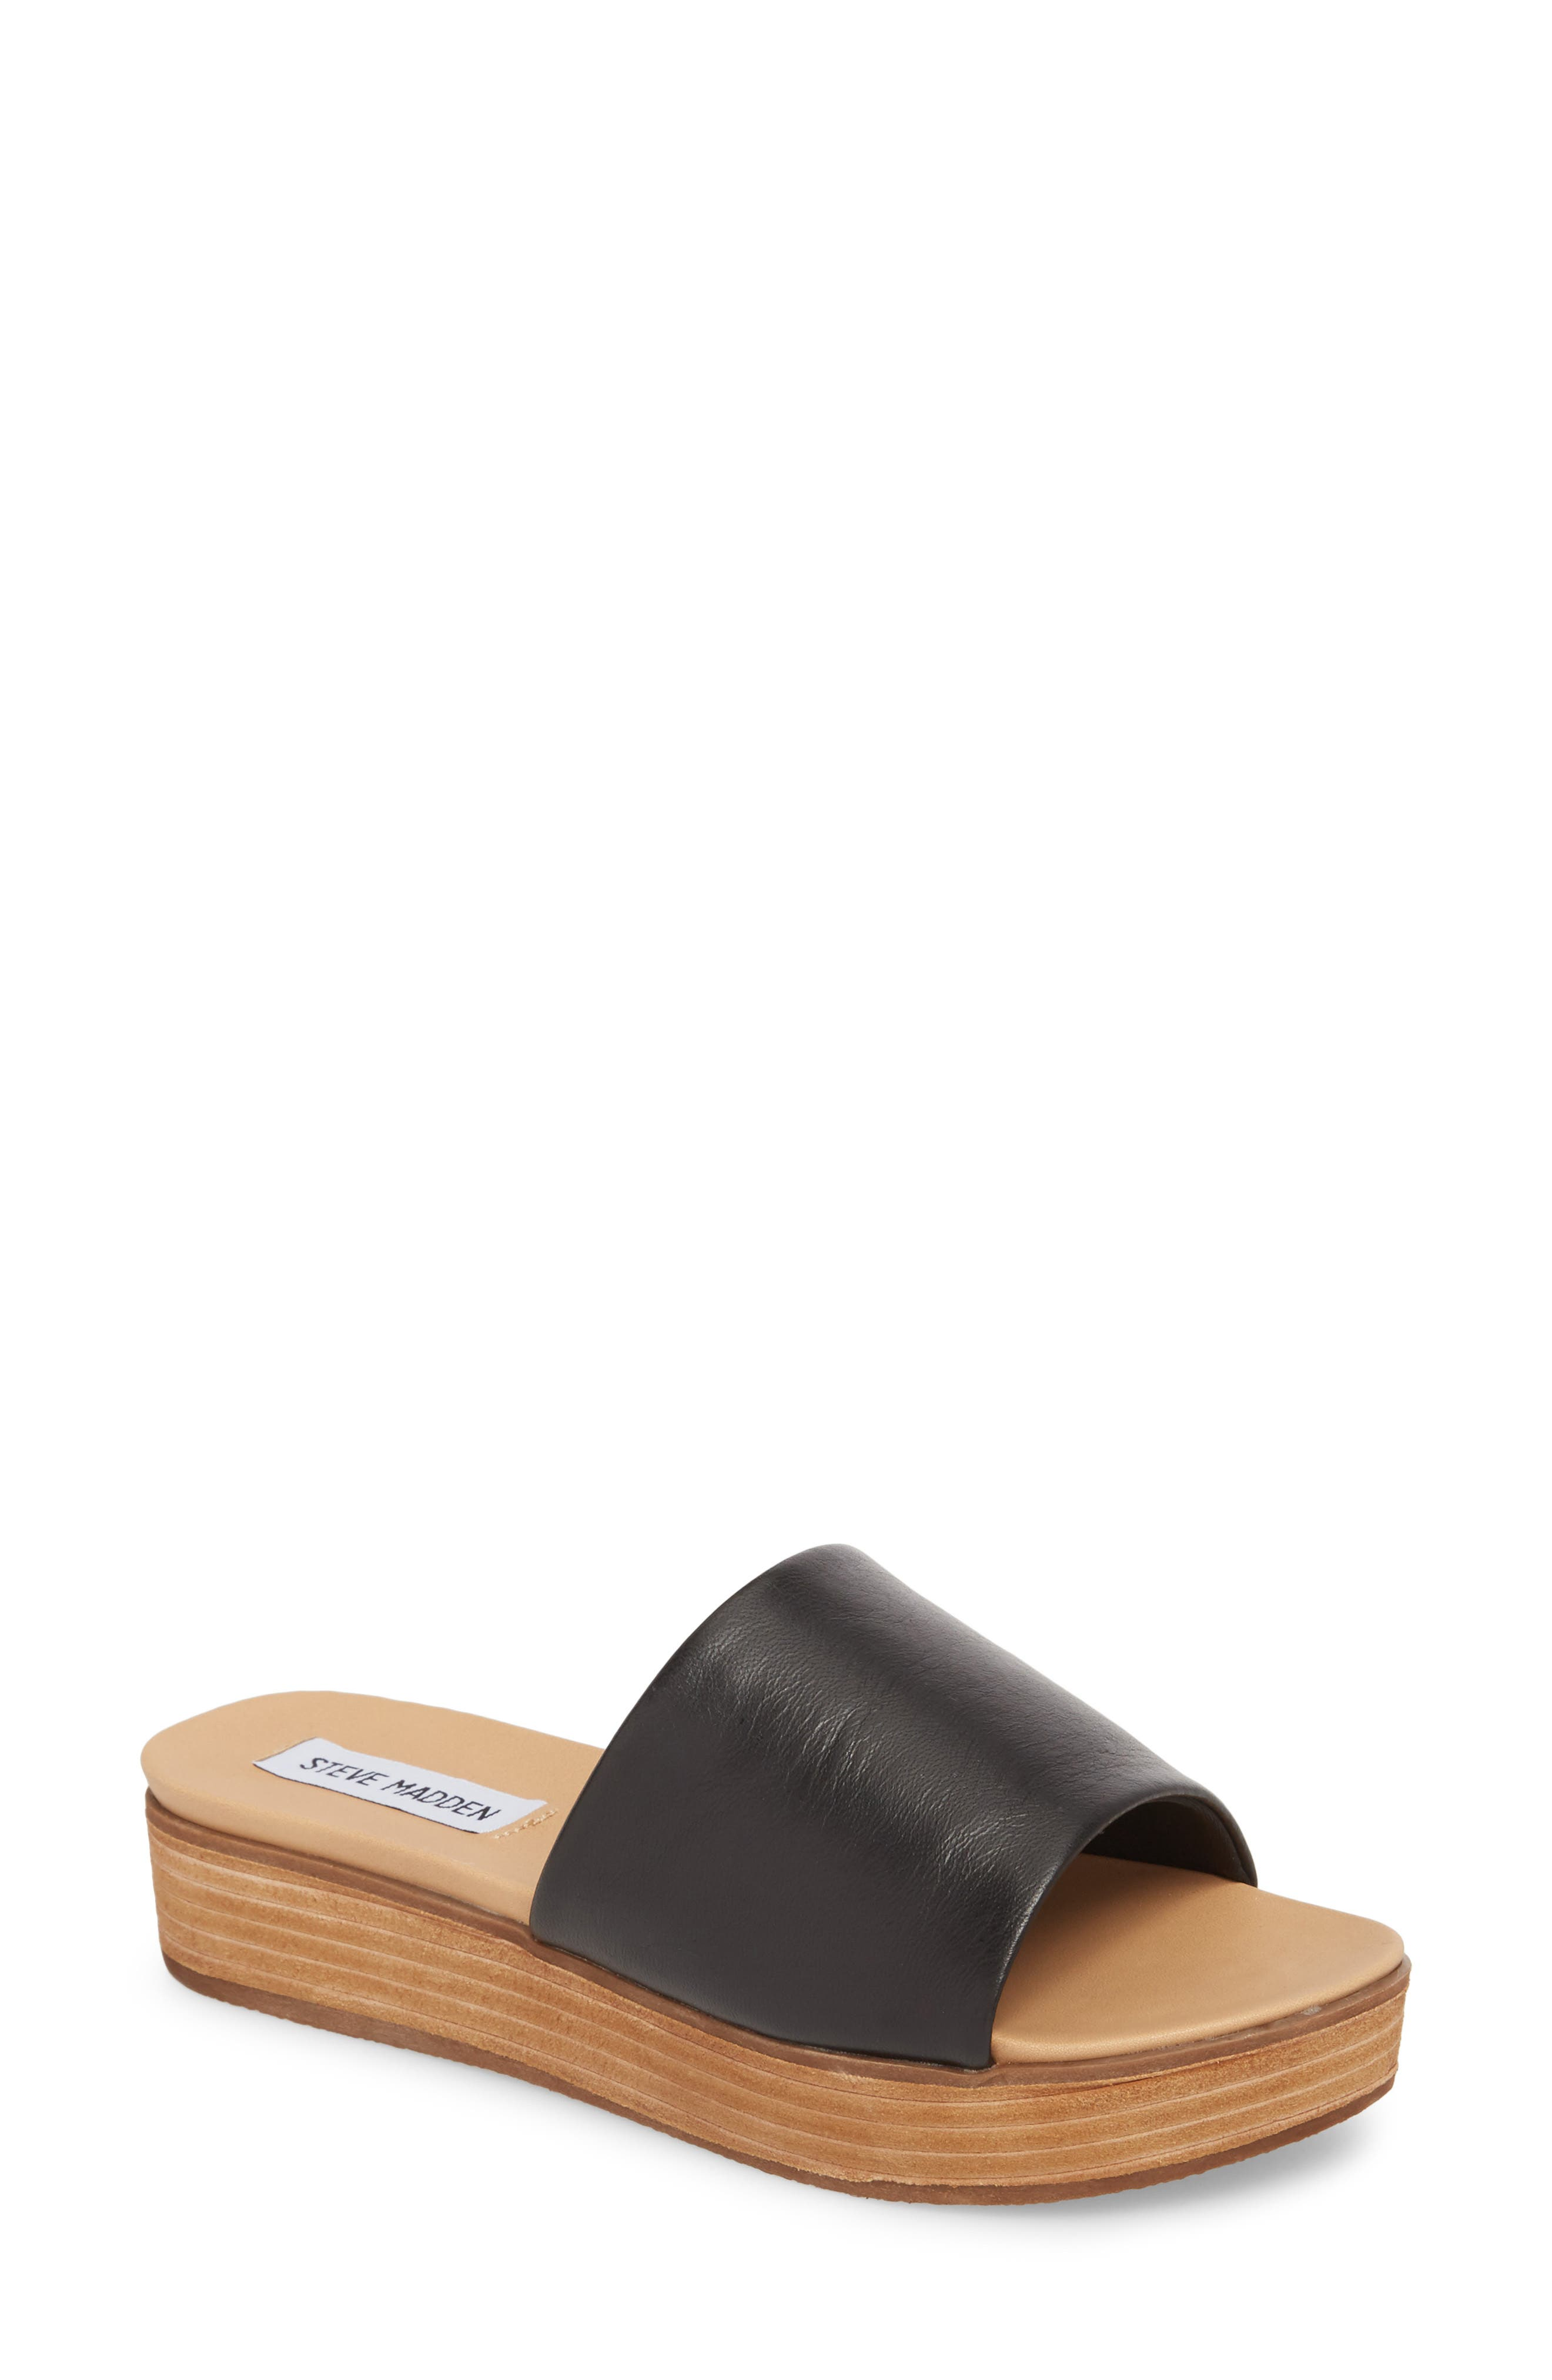 Genca Slide Sandal,                         Main,                         color, 001